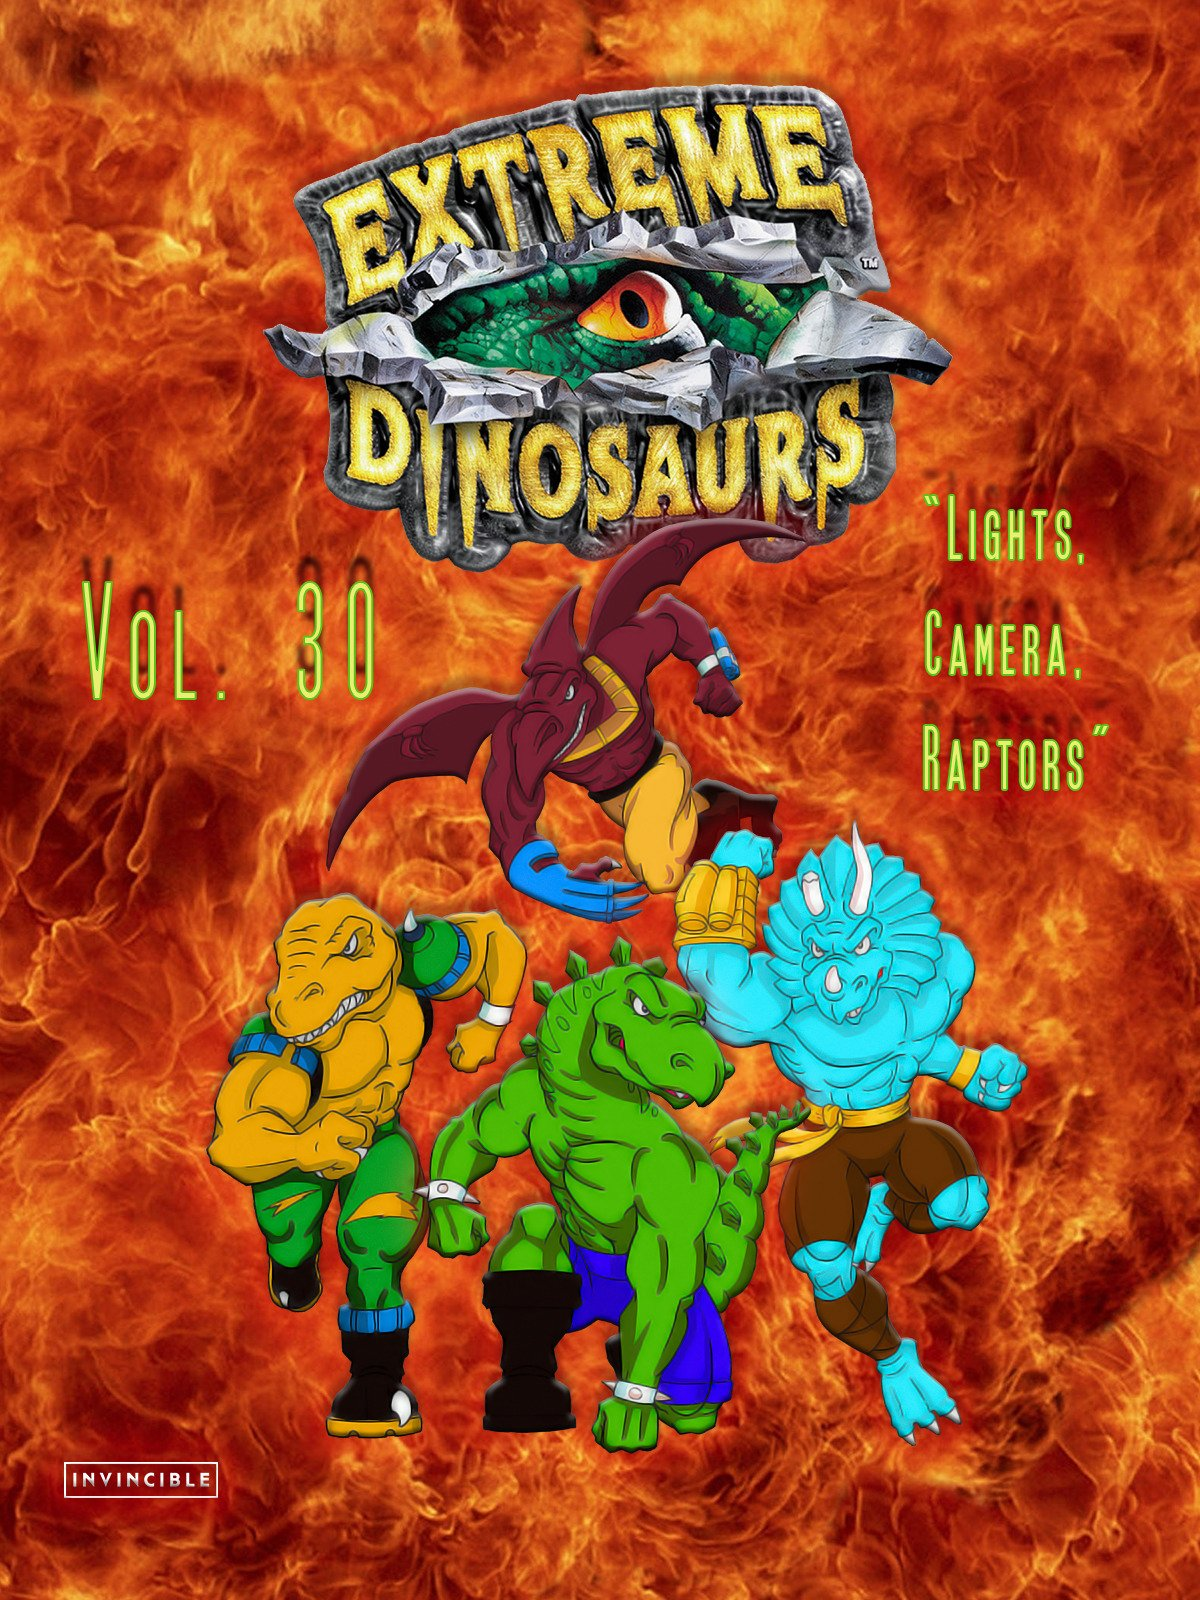 Extreme Dinosaurs Vol. 30Lights, Camera, Raptors